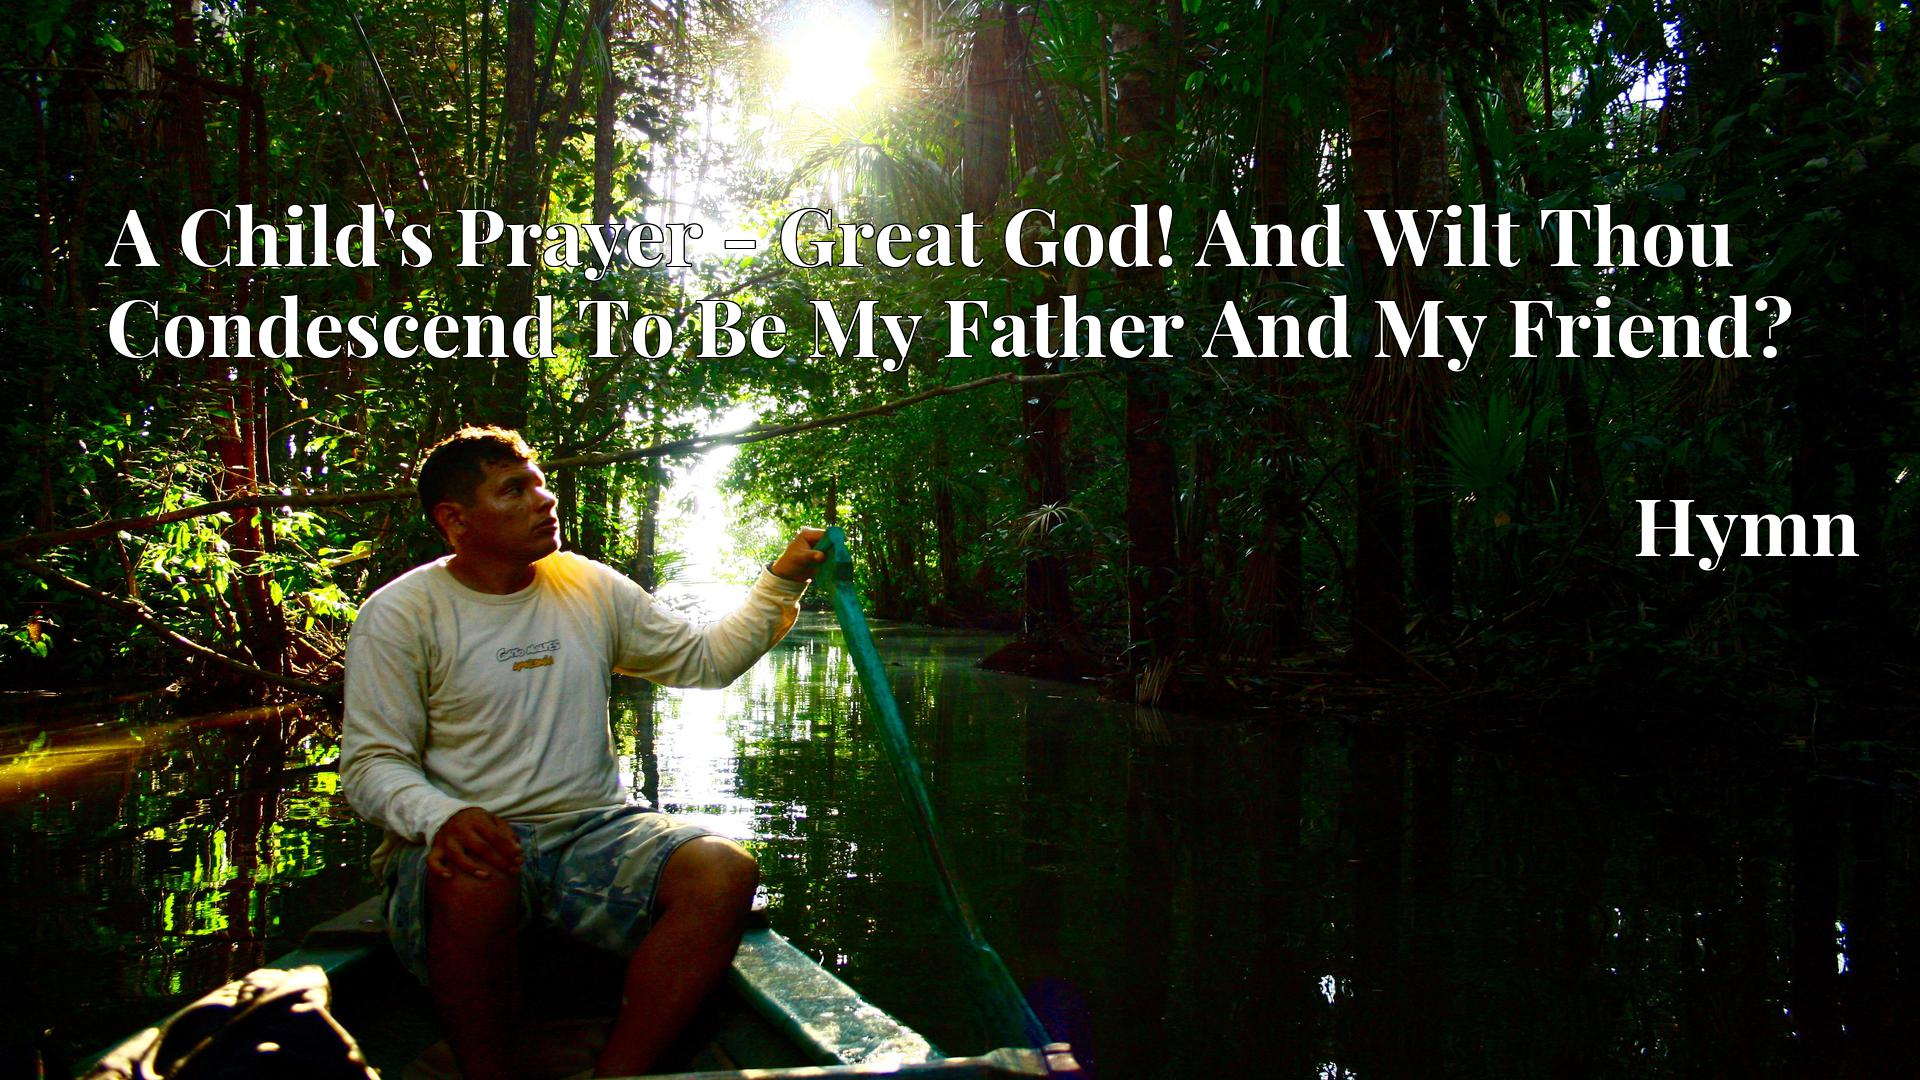 A Child's Prayer - Great God! And Wilt Thou Condescend To Be My Father And My Friend? - Hymn